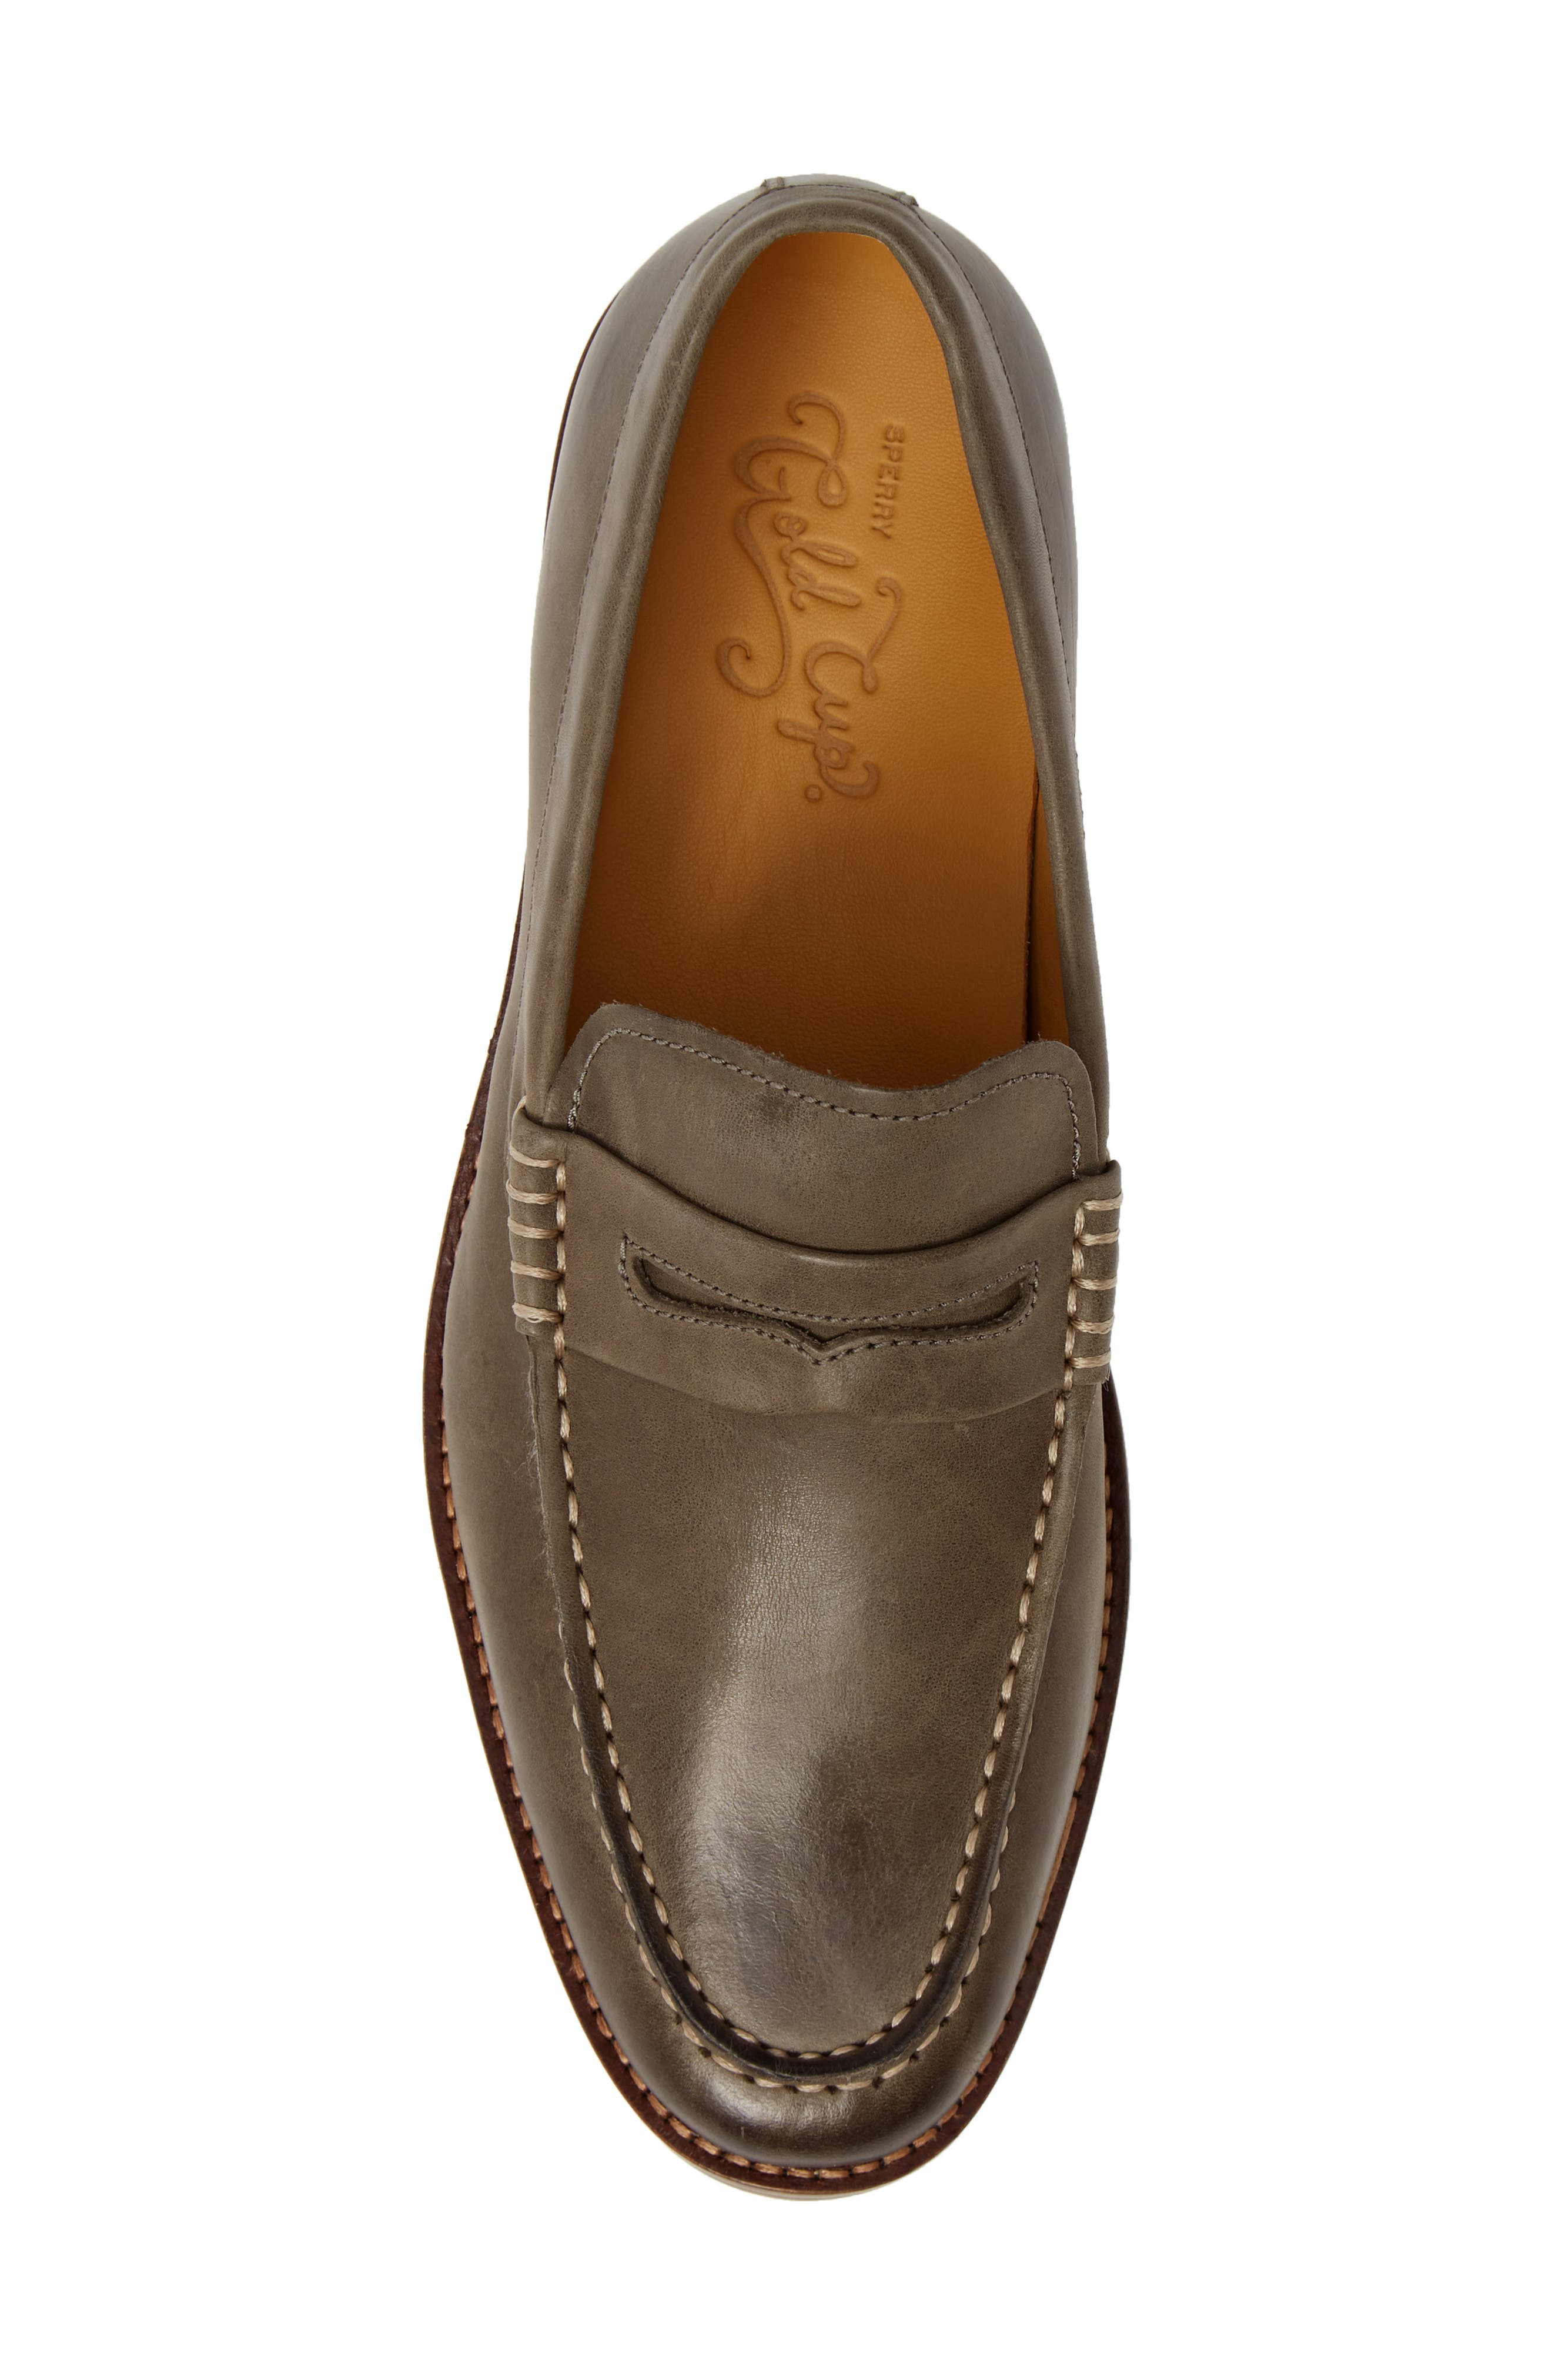 SPERRY, Exeter Penny Loafer, Alternate thumbnail 5, color, GREY